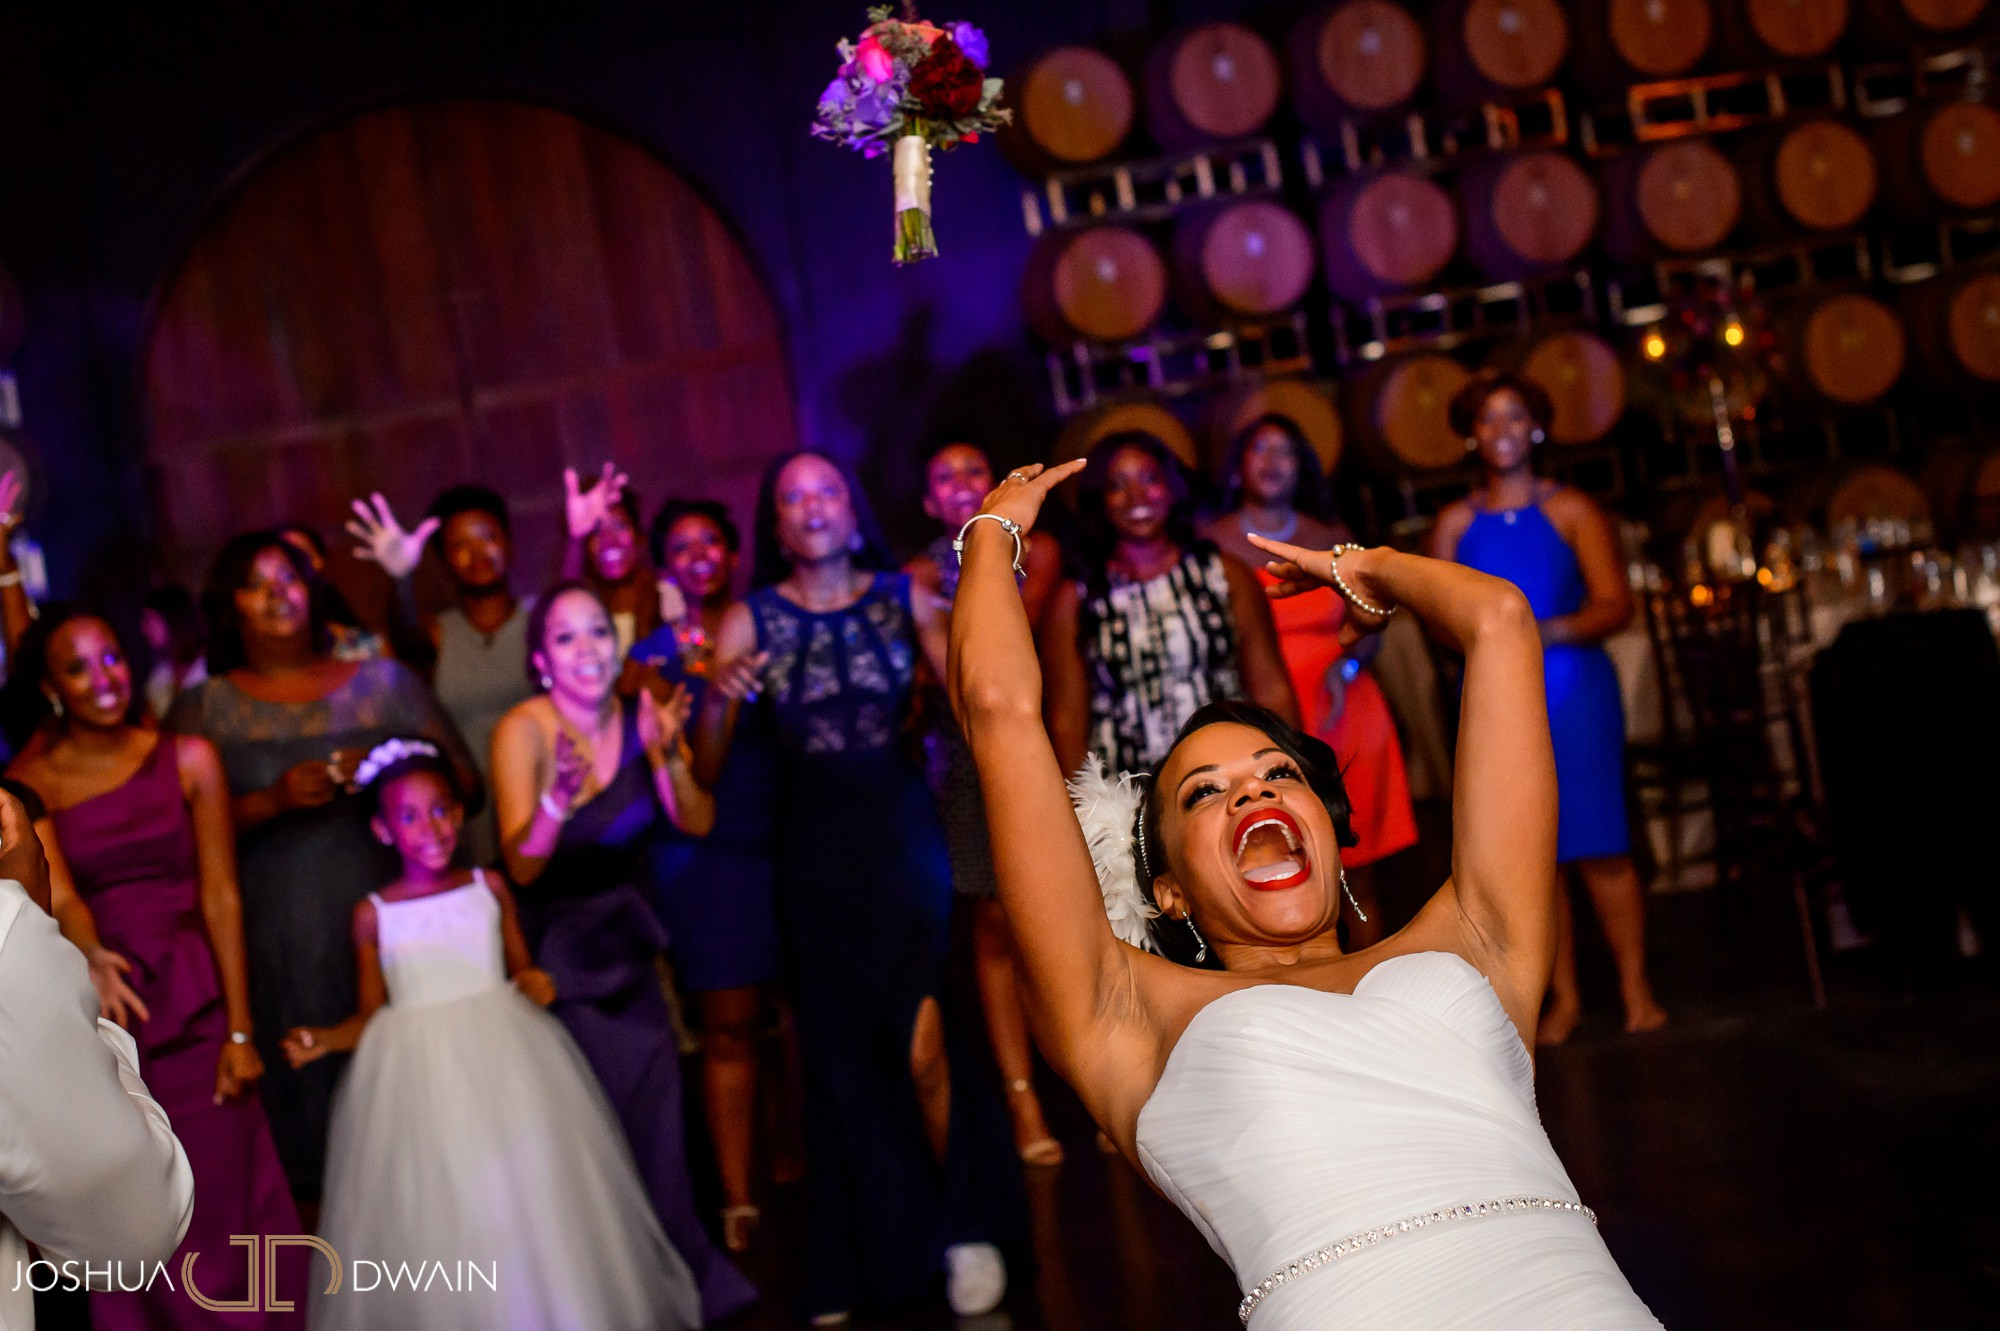 briana-donovan-37-leal-vineyards-winery-wedding-san-francisico-wedding-photographer-joshua-dwain